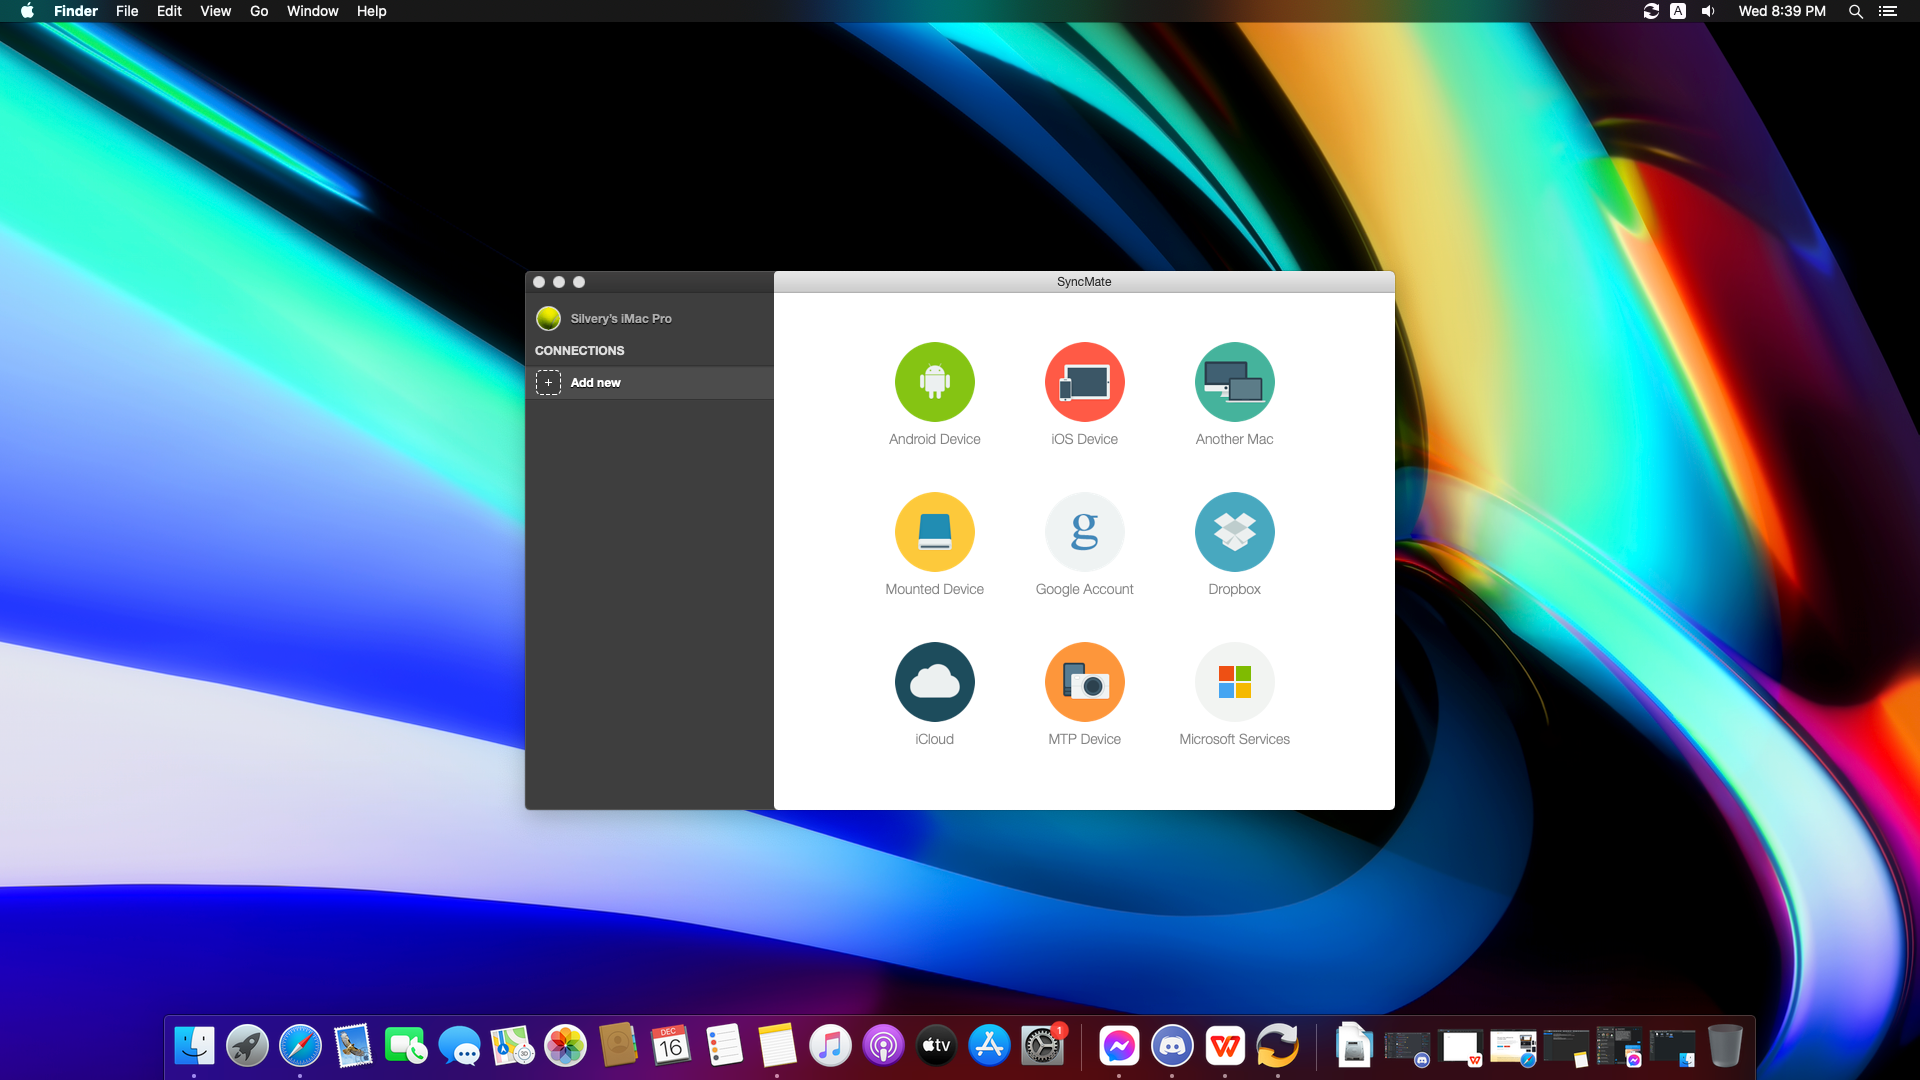 How to use SyncMate on macOS - 2